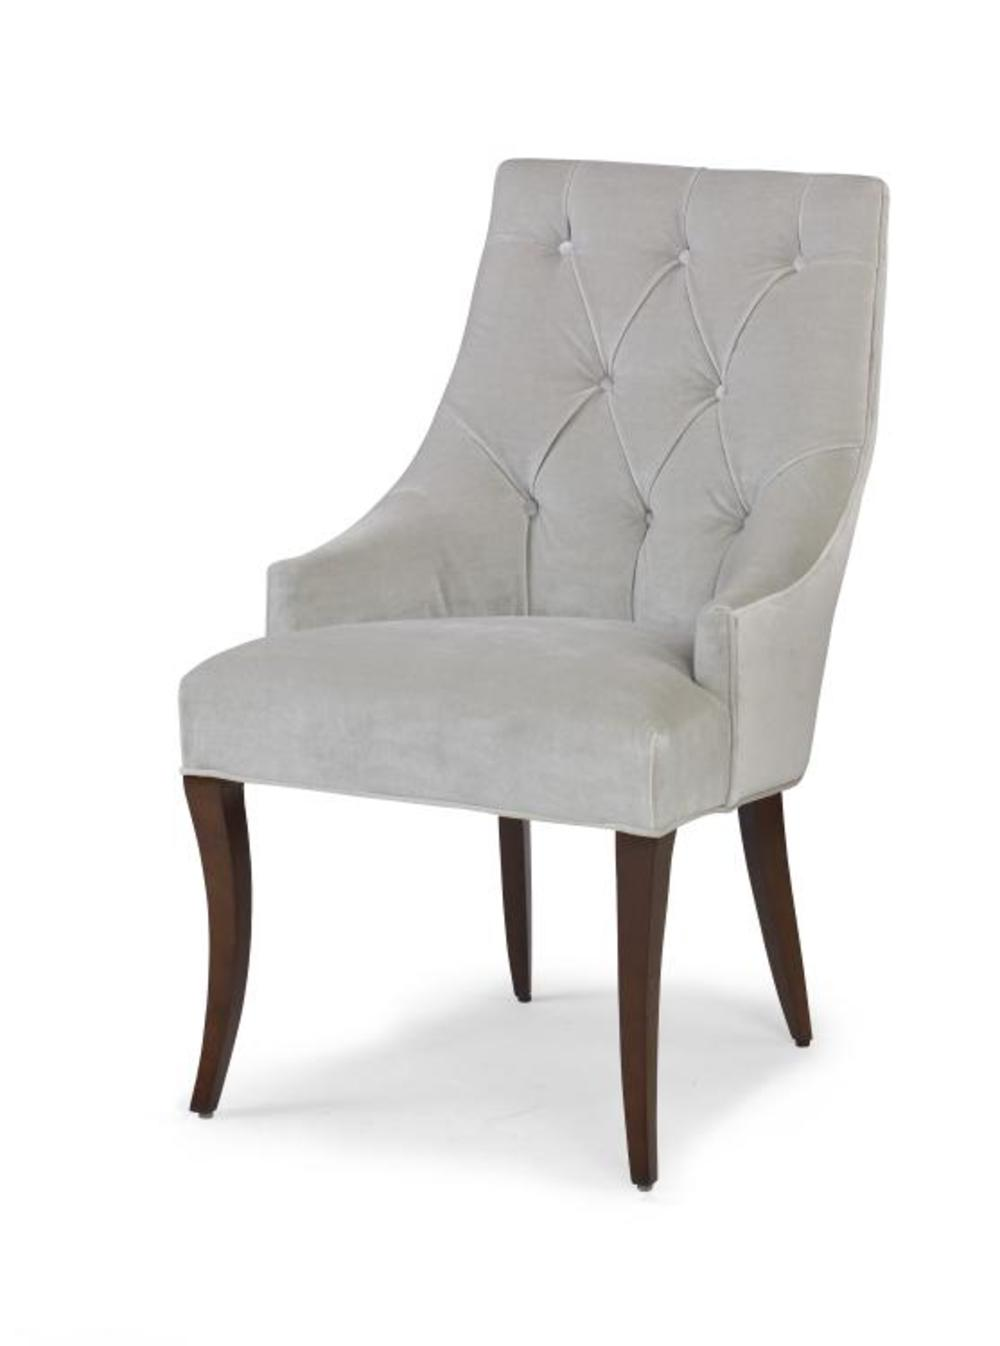 Highland House - Comer Chair